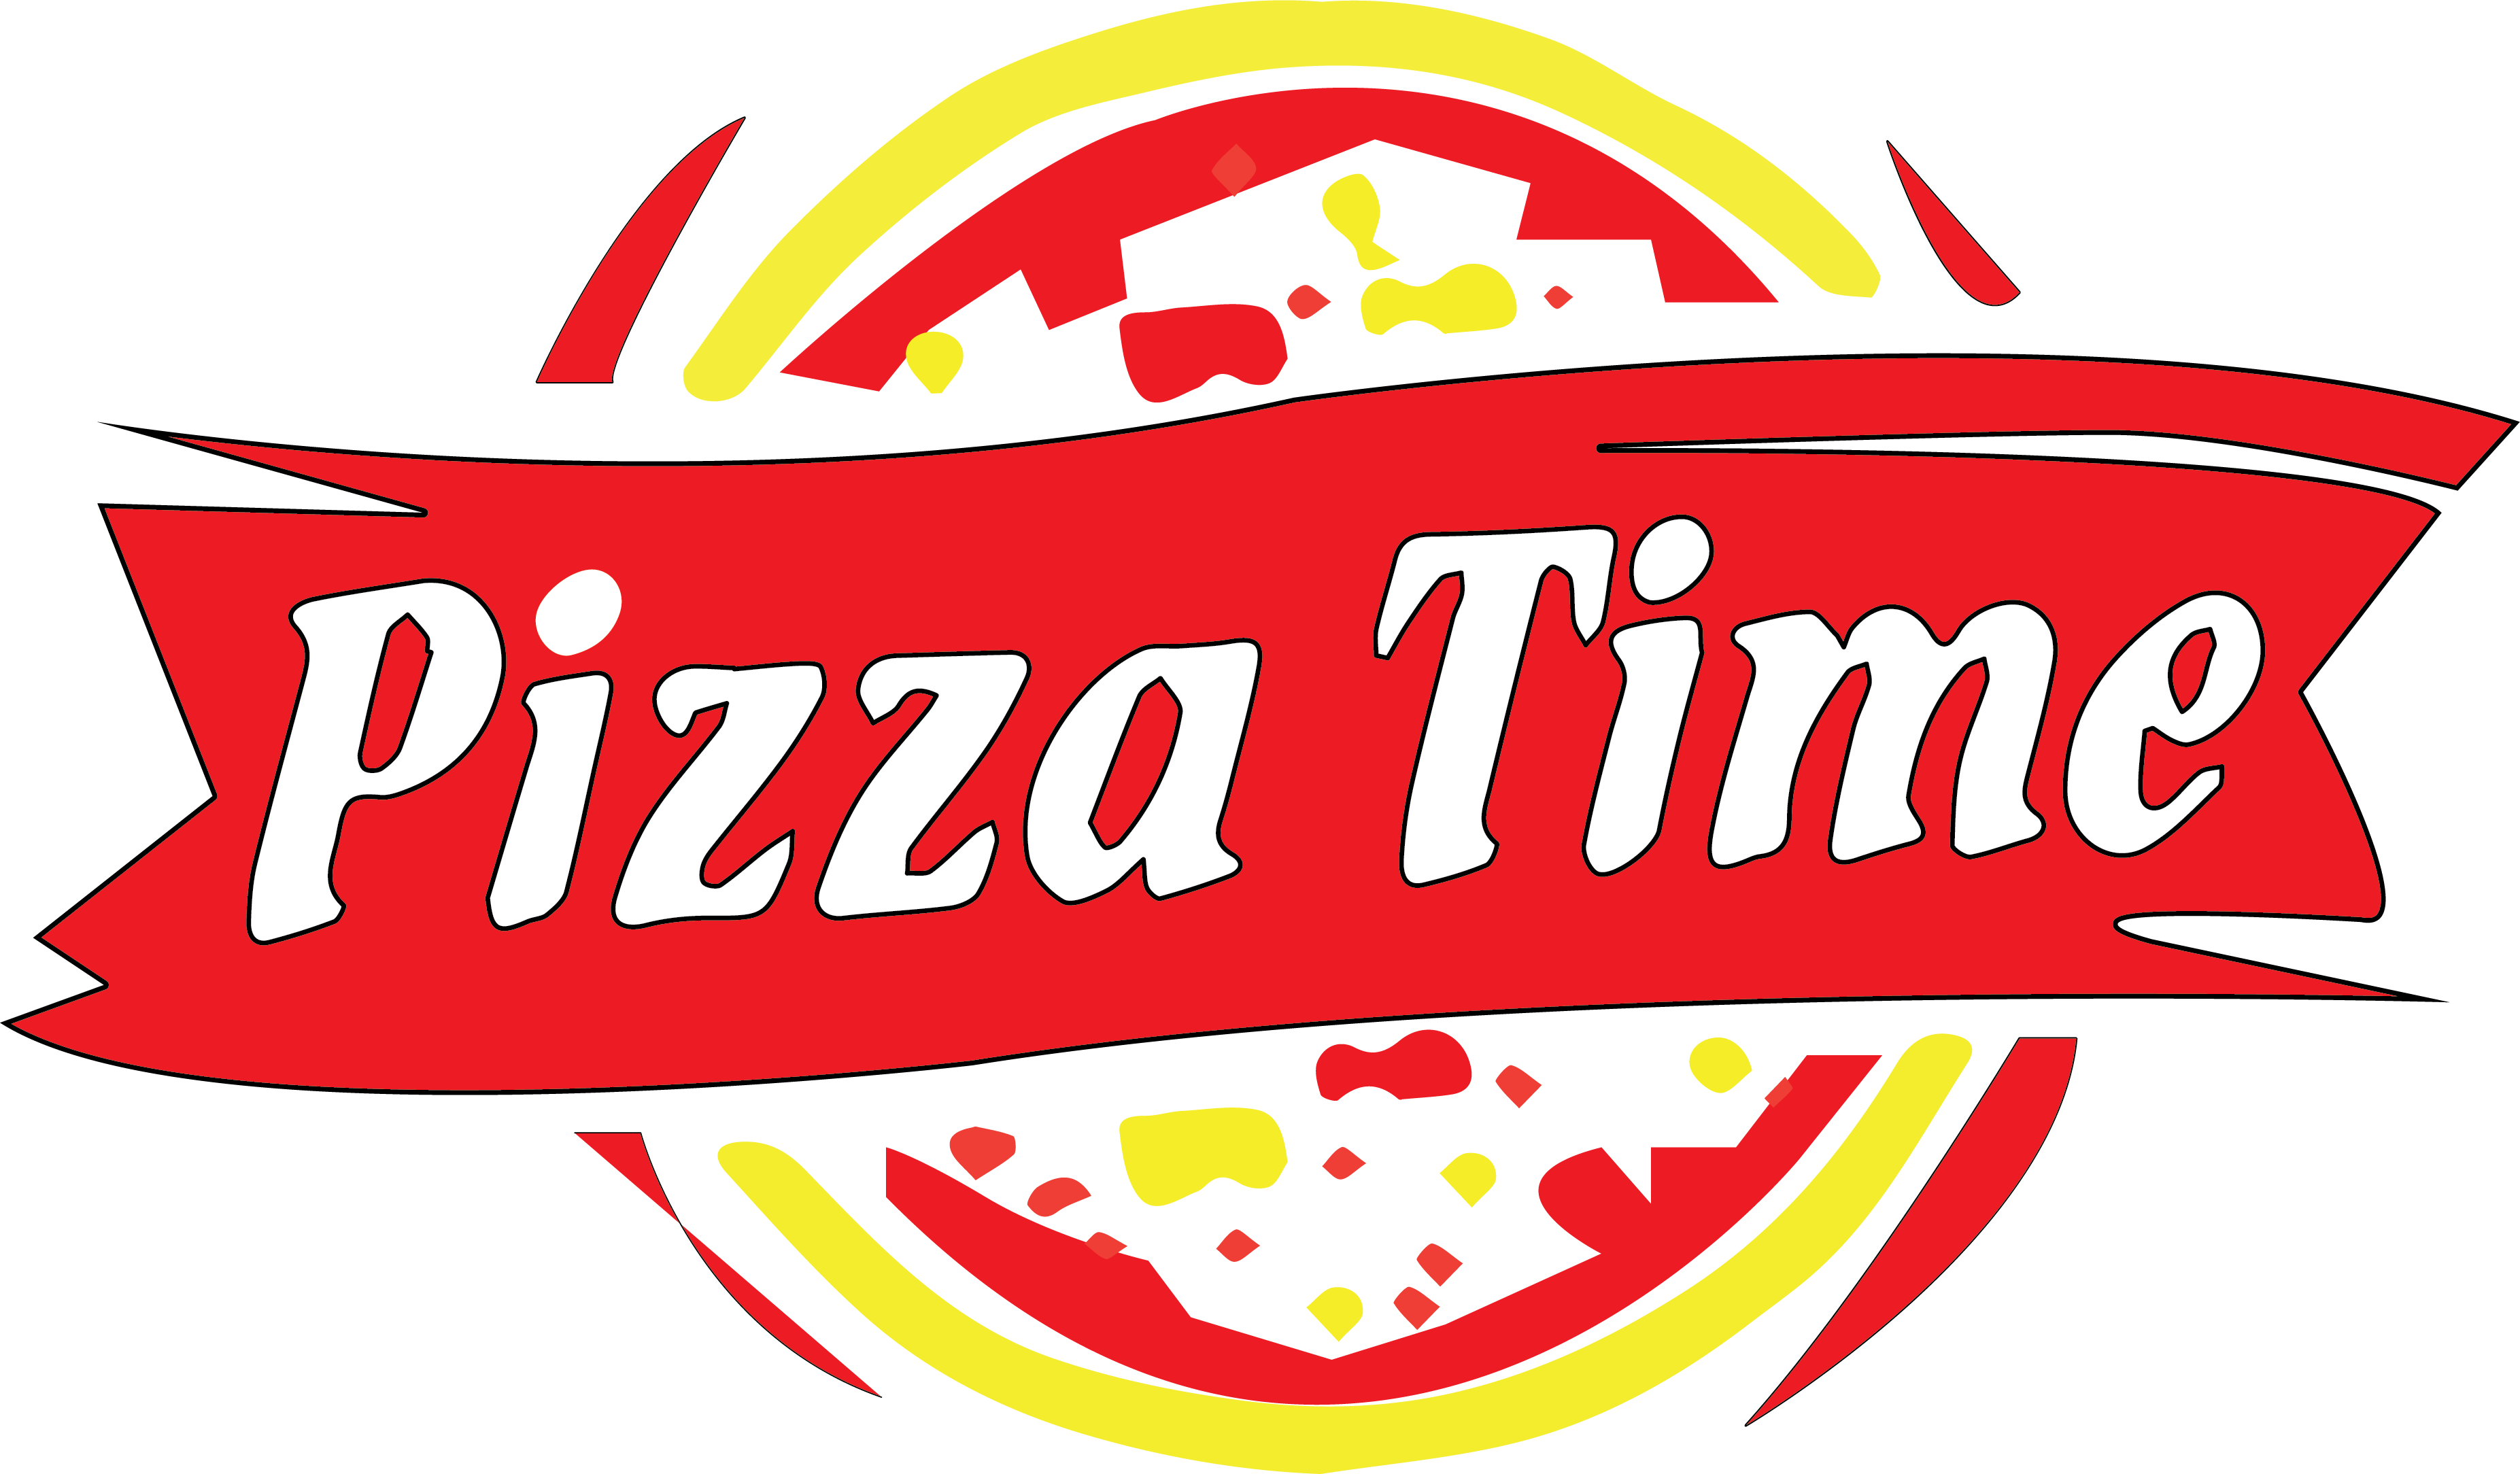 Pizza Time Order Online Pizza Time Menu Menu For Pizza Time